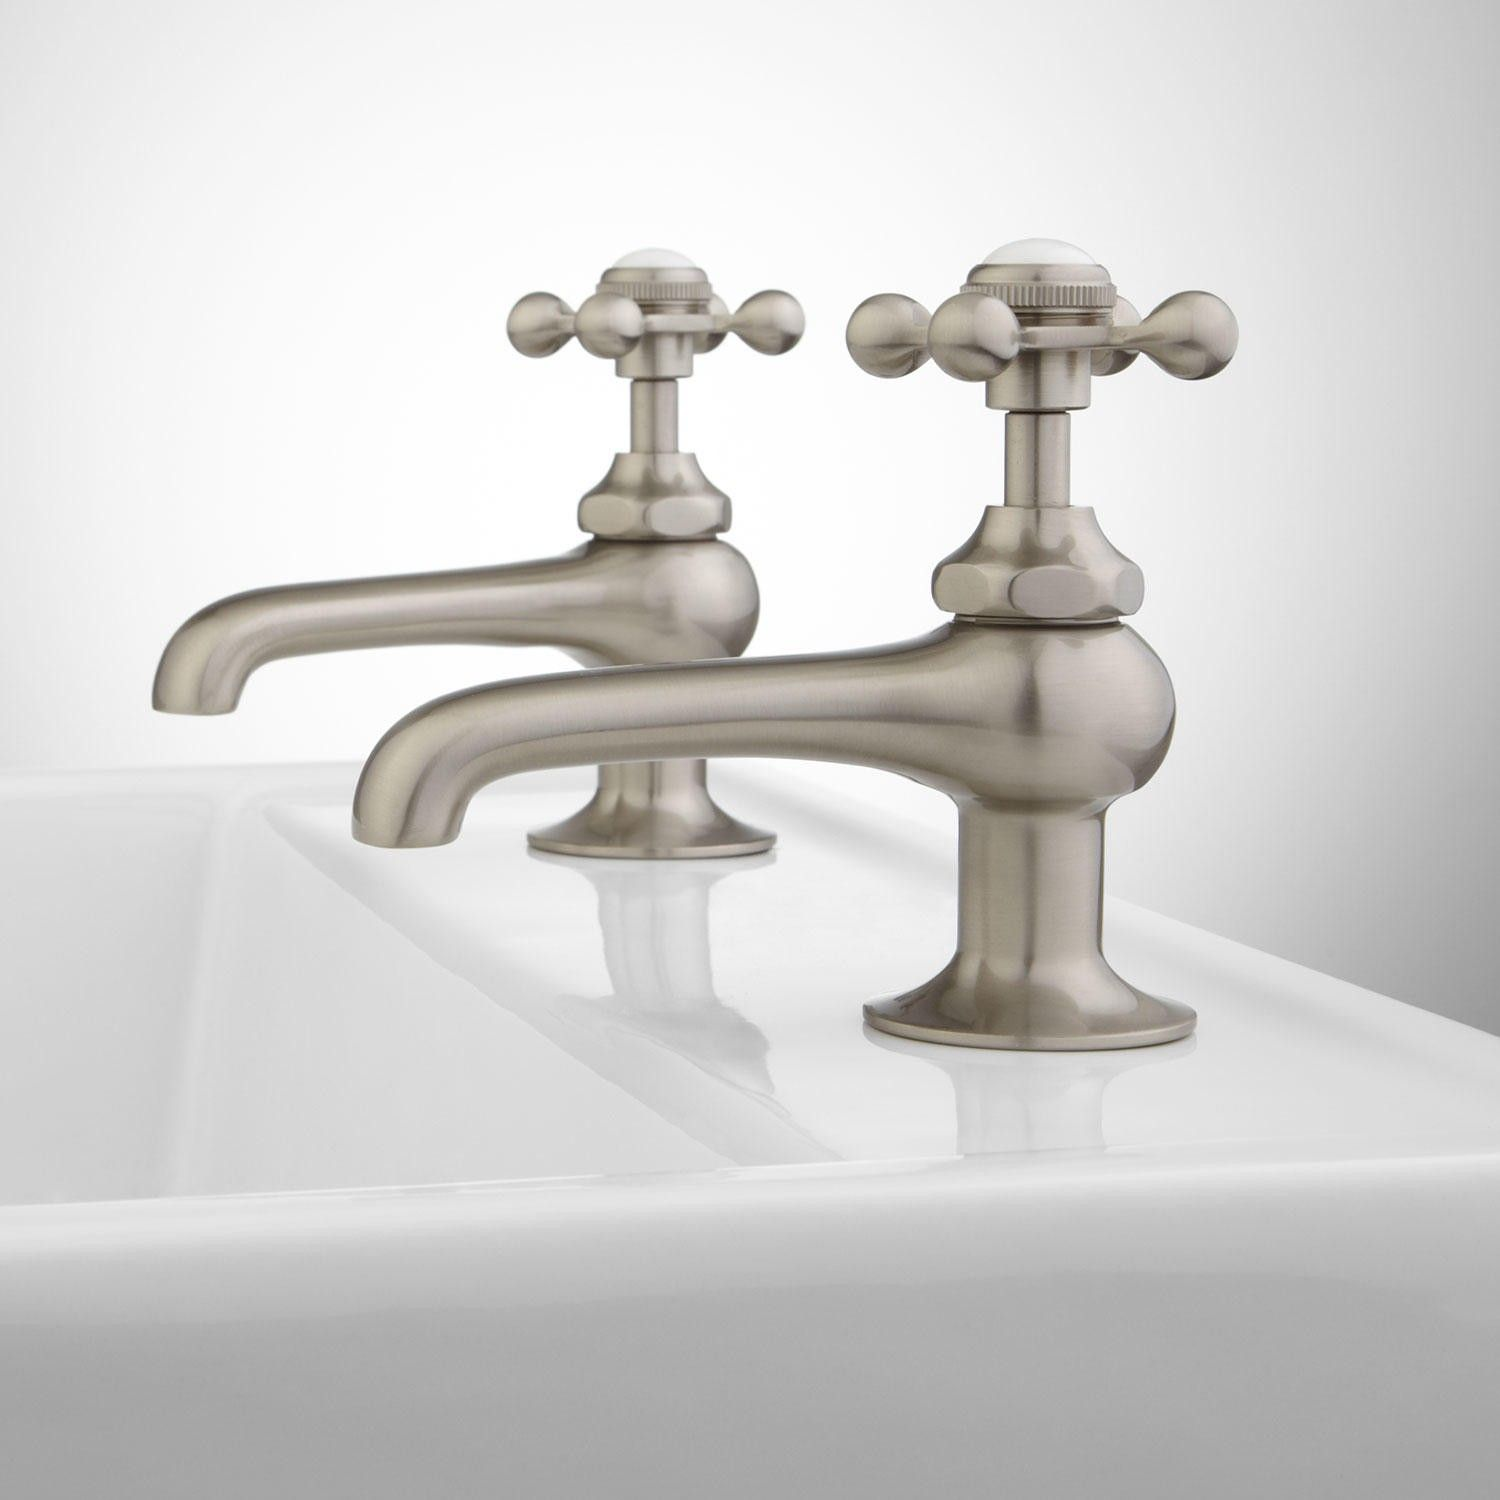 Reproduction Cross Handle Sink Faucets Bathroom